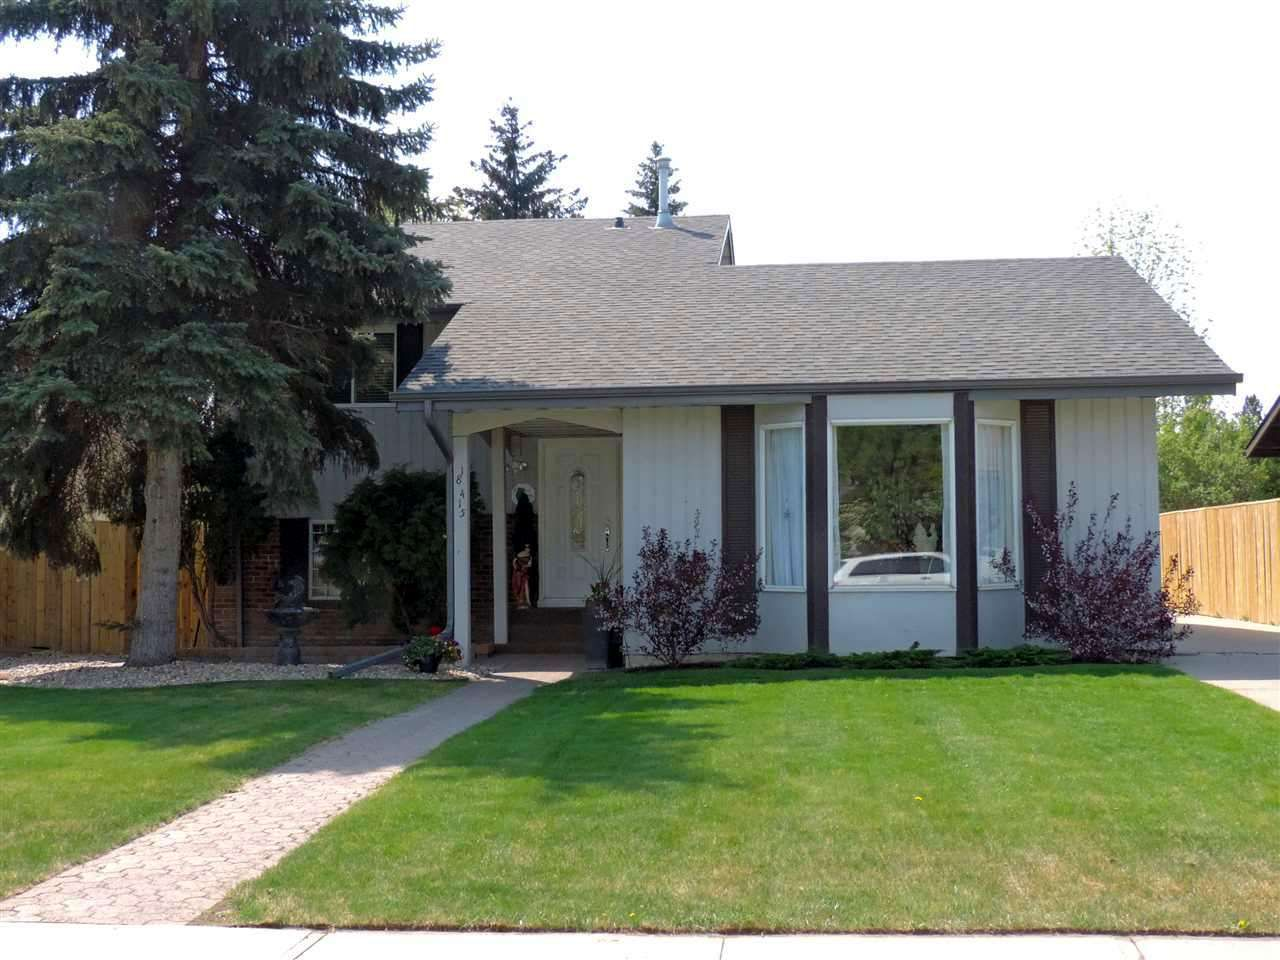 Main Photo: 18415 82 AV NW in Edmonton: Zone 20 House for sale : MLS®# E4020994